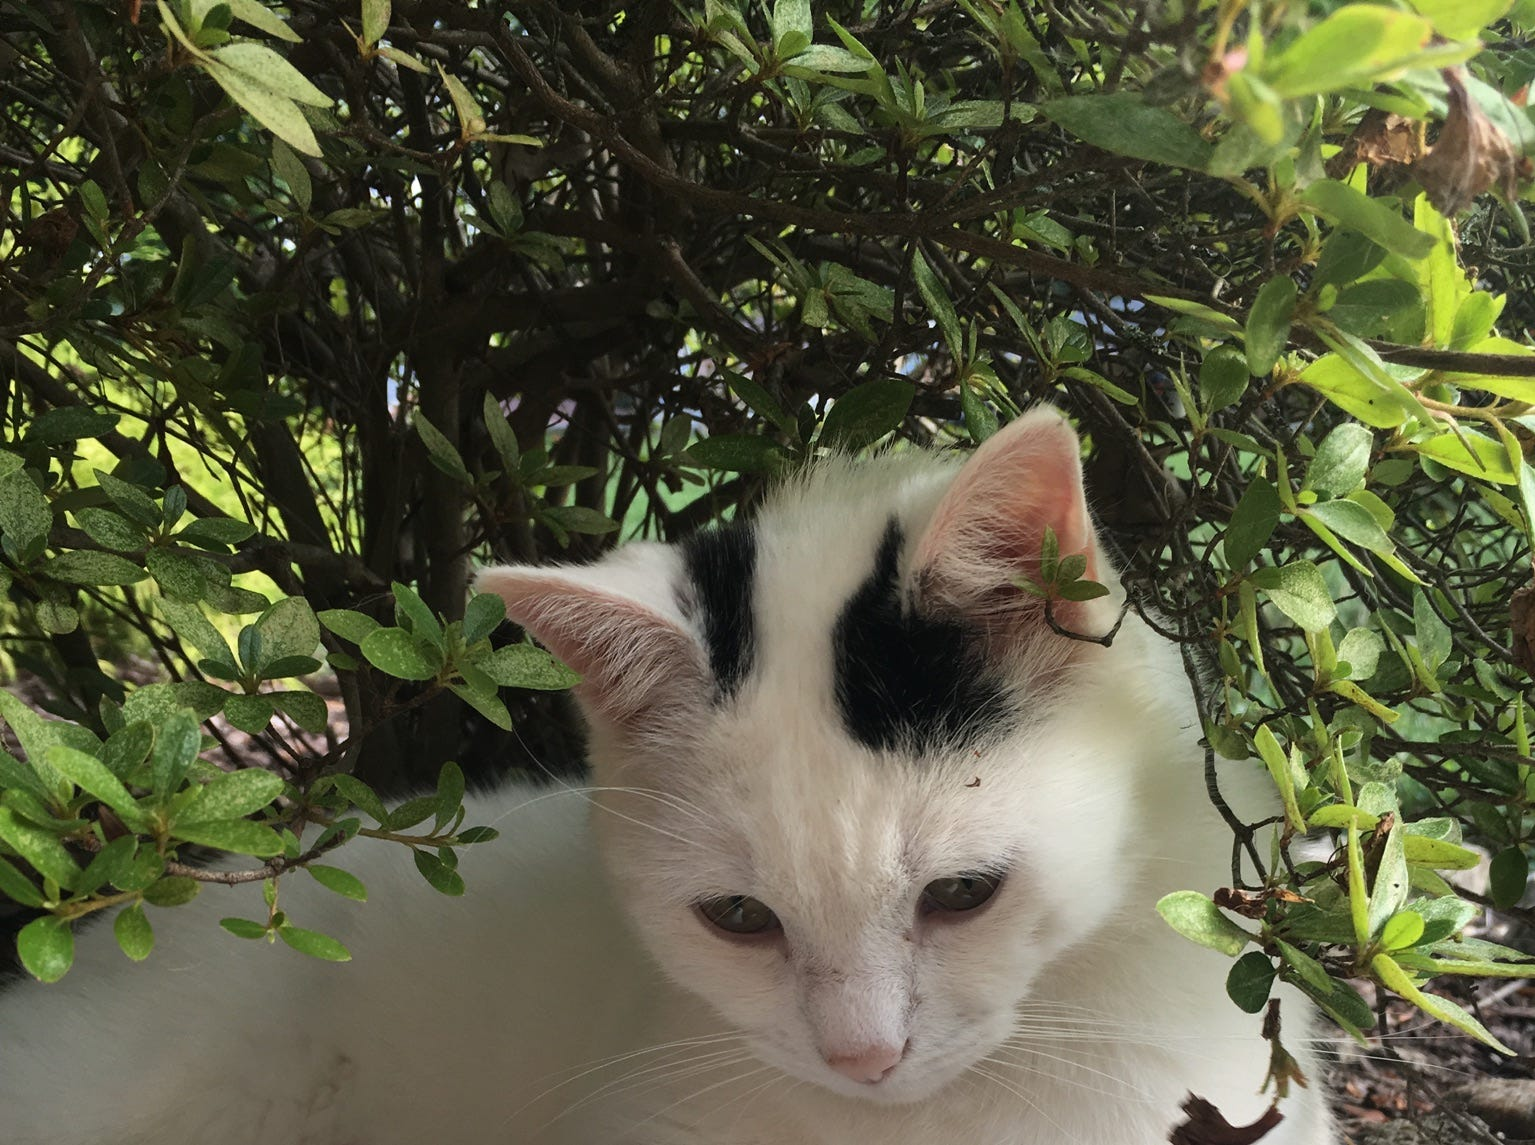 This is CC, the cat who rules the roost in the house occupied by Lisa Gillespie and Randy Tucker. He's sitting here in one of his favorite spots. He loves the outdoors, coconut almond chip ice cream and his Temptations cat treats!